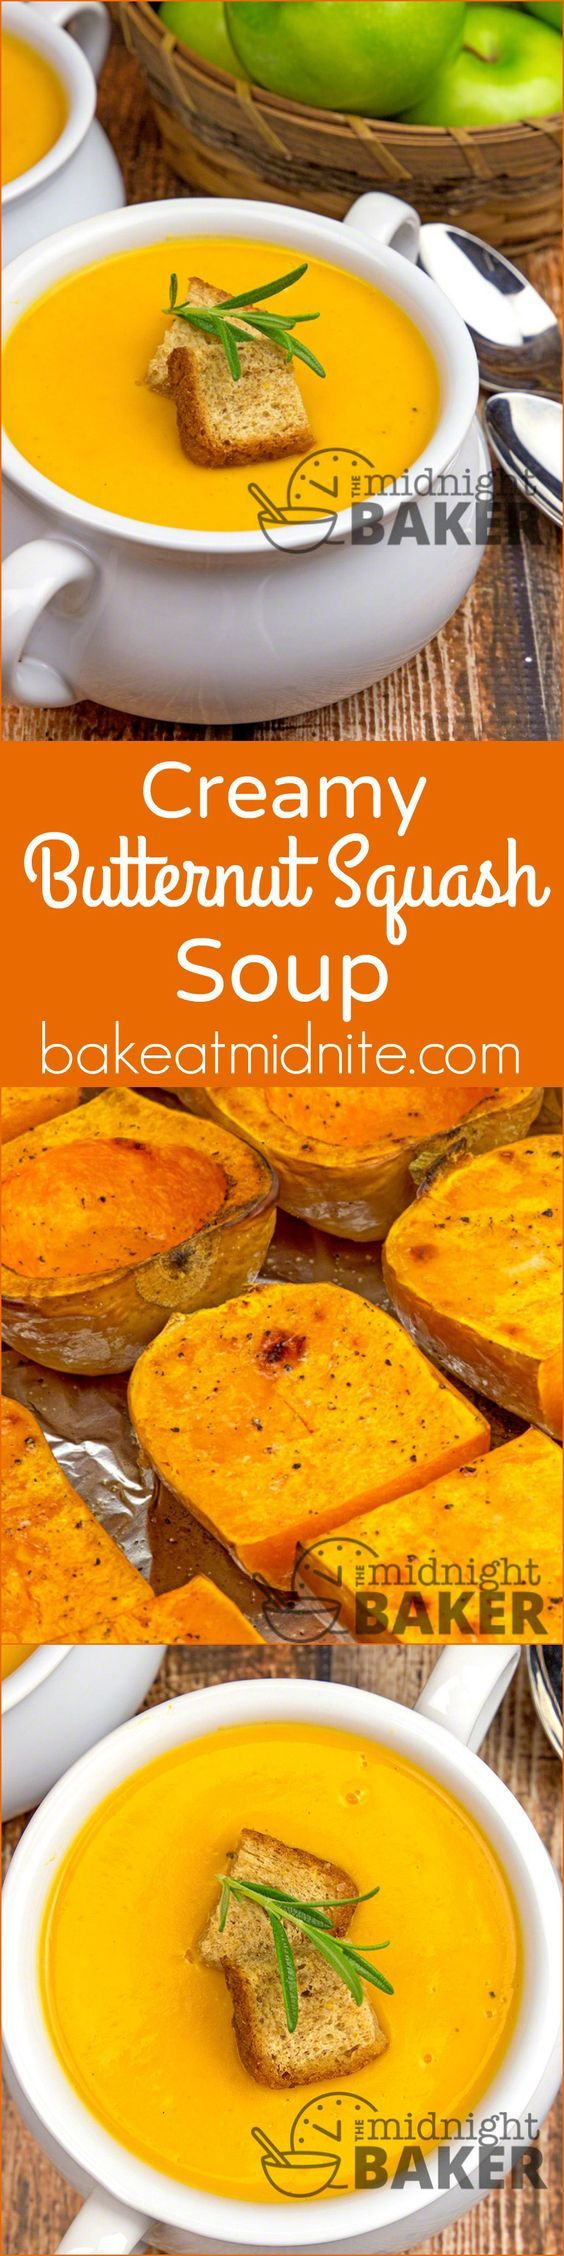 "Creamy Butternut Squash Soup ~ nothing says ""fall"" better than roasted squash made into a creamy soup!"